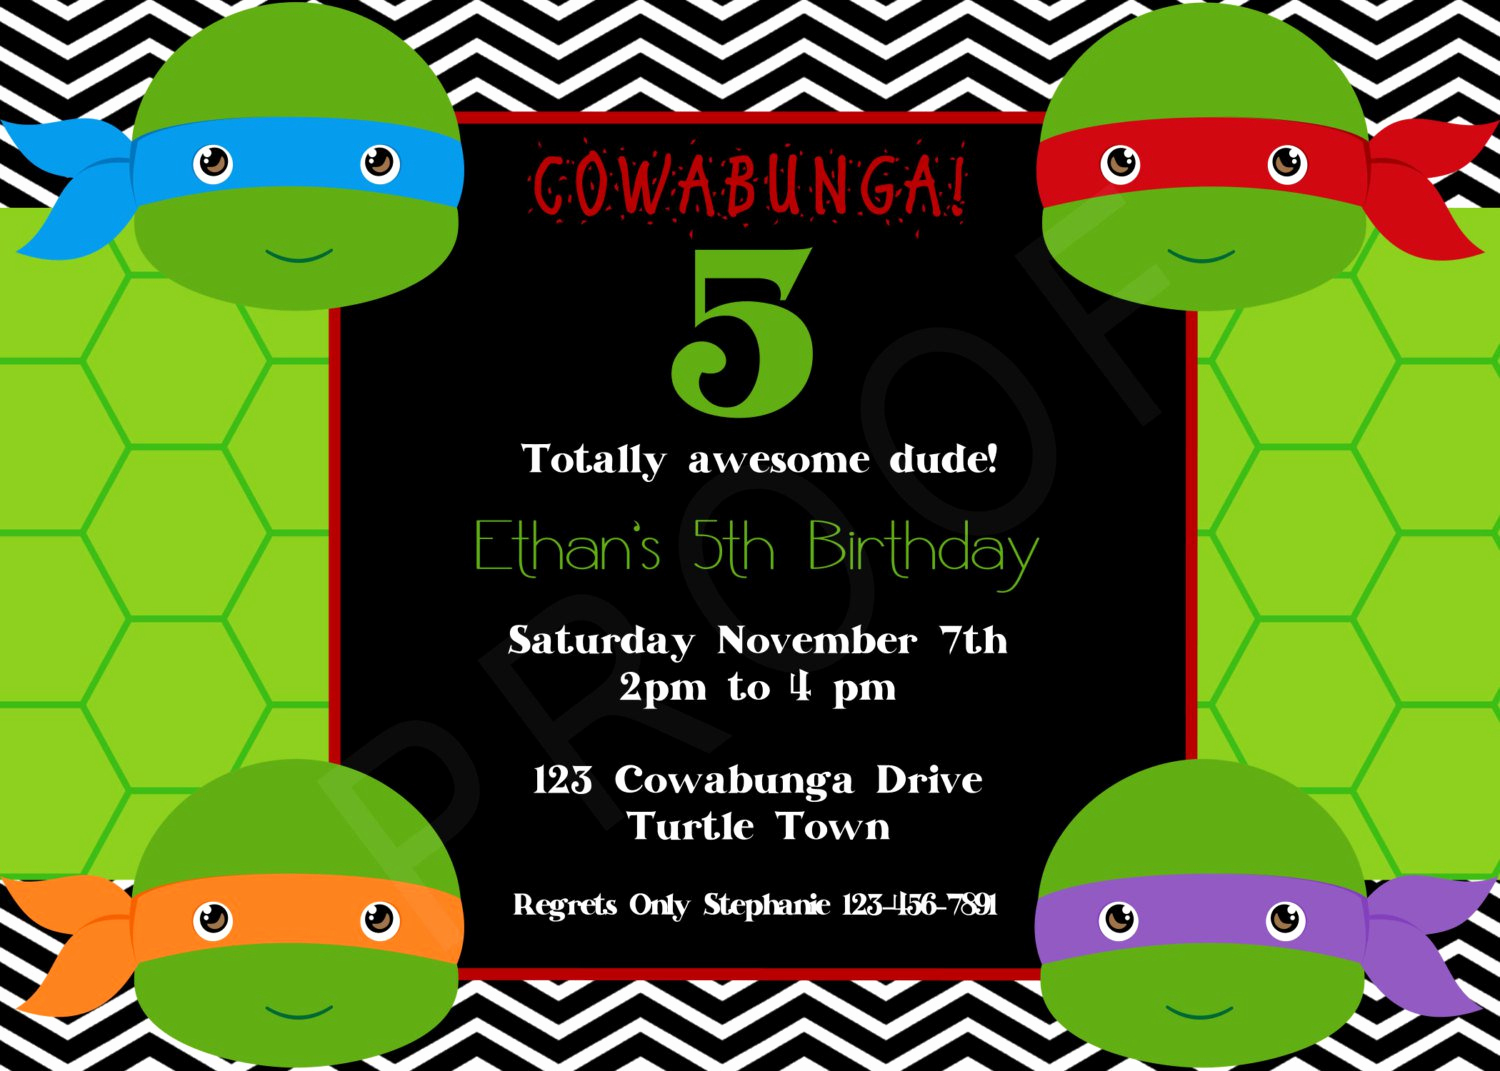 Ninja Turtle Invitation Template Free Inspirational Teenage Mutant Ninja Turtles Birthday Party Invitations Free